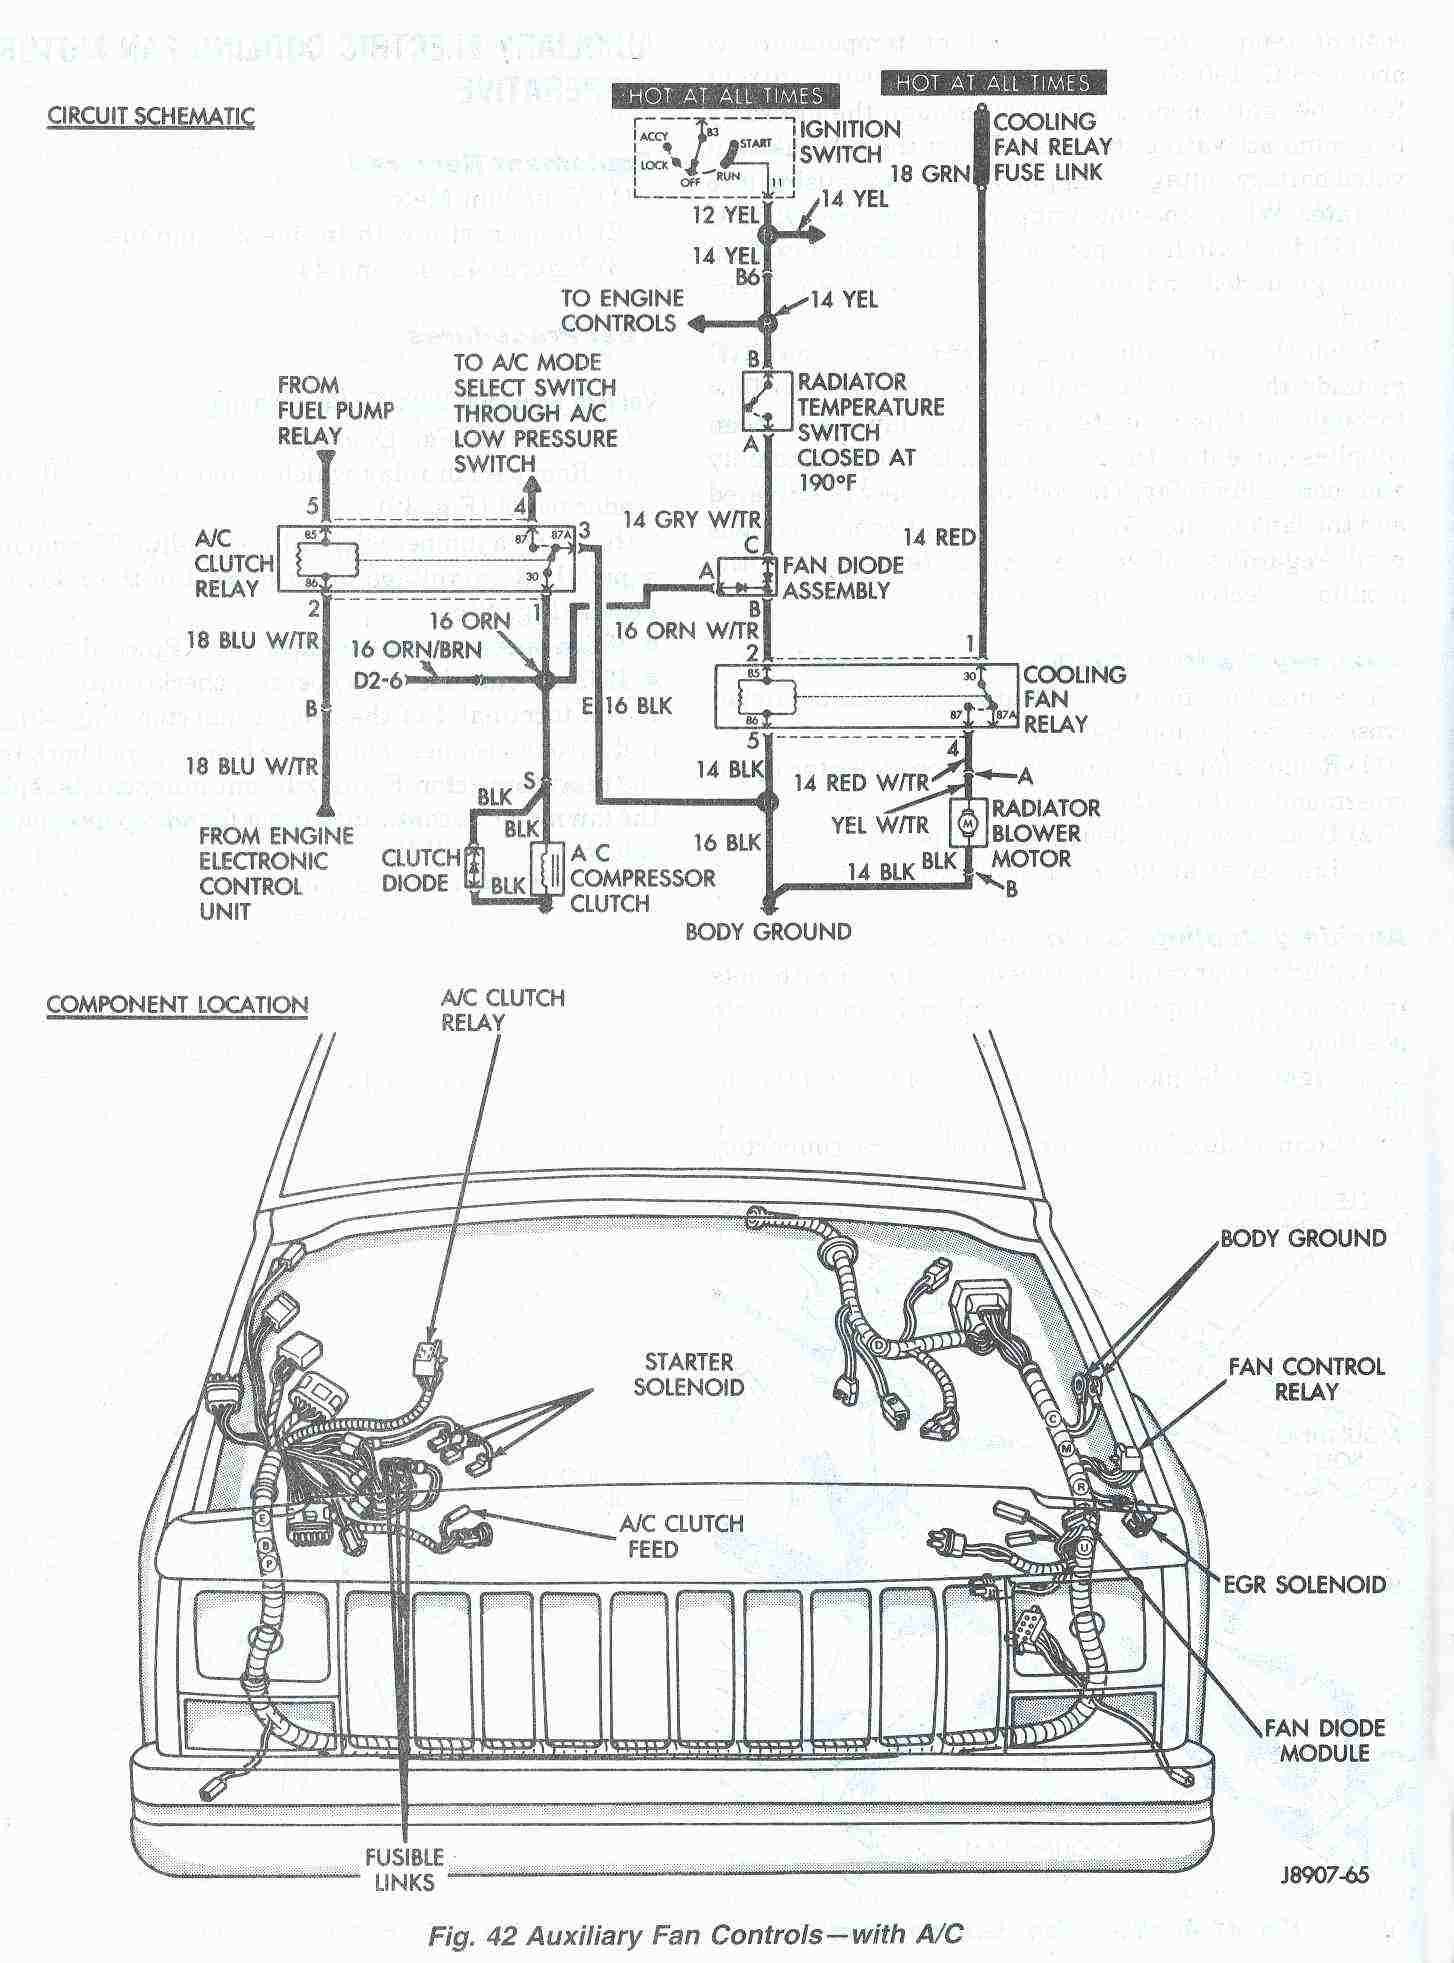 e8c83109bad6c41d377df8c1cb7a8dc4 at the asd relay if vole is not b16 check fuse 20 30 a good there 1987 jeep grand wagoneer wiring diagram at edmiracle.co